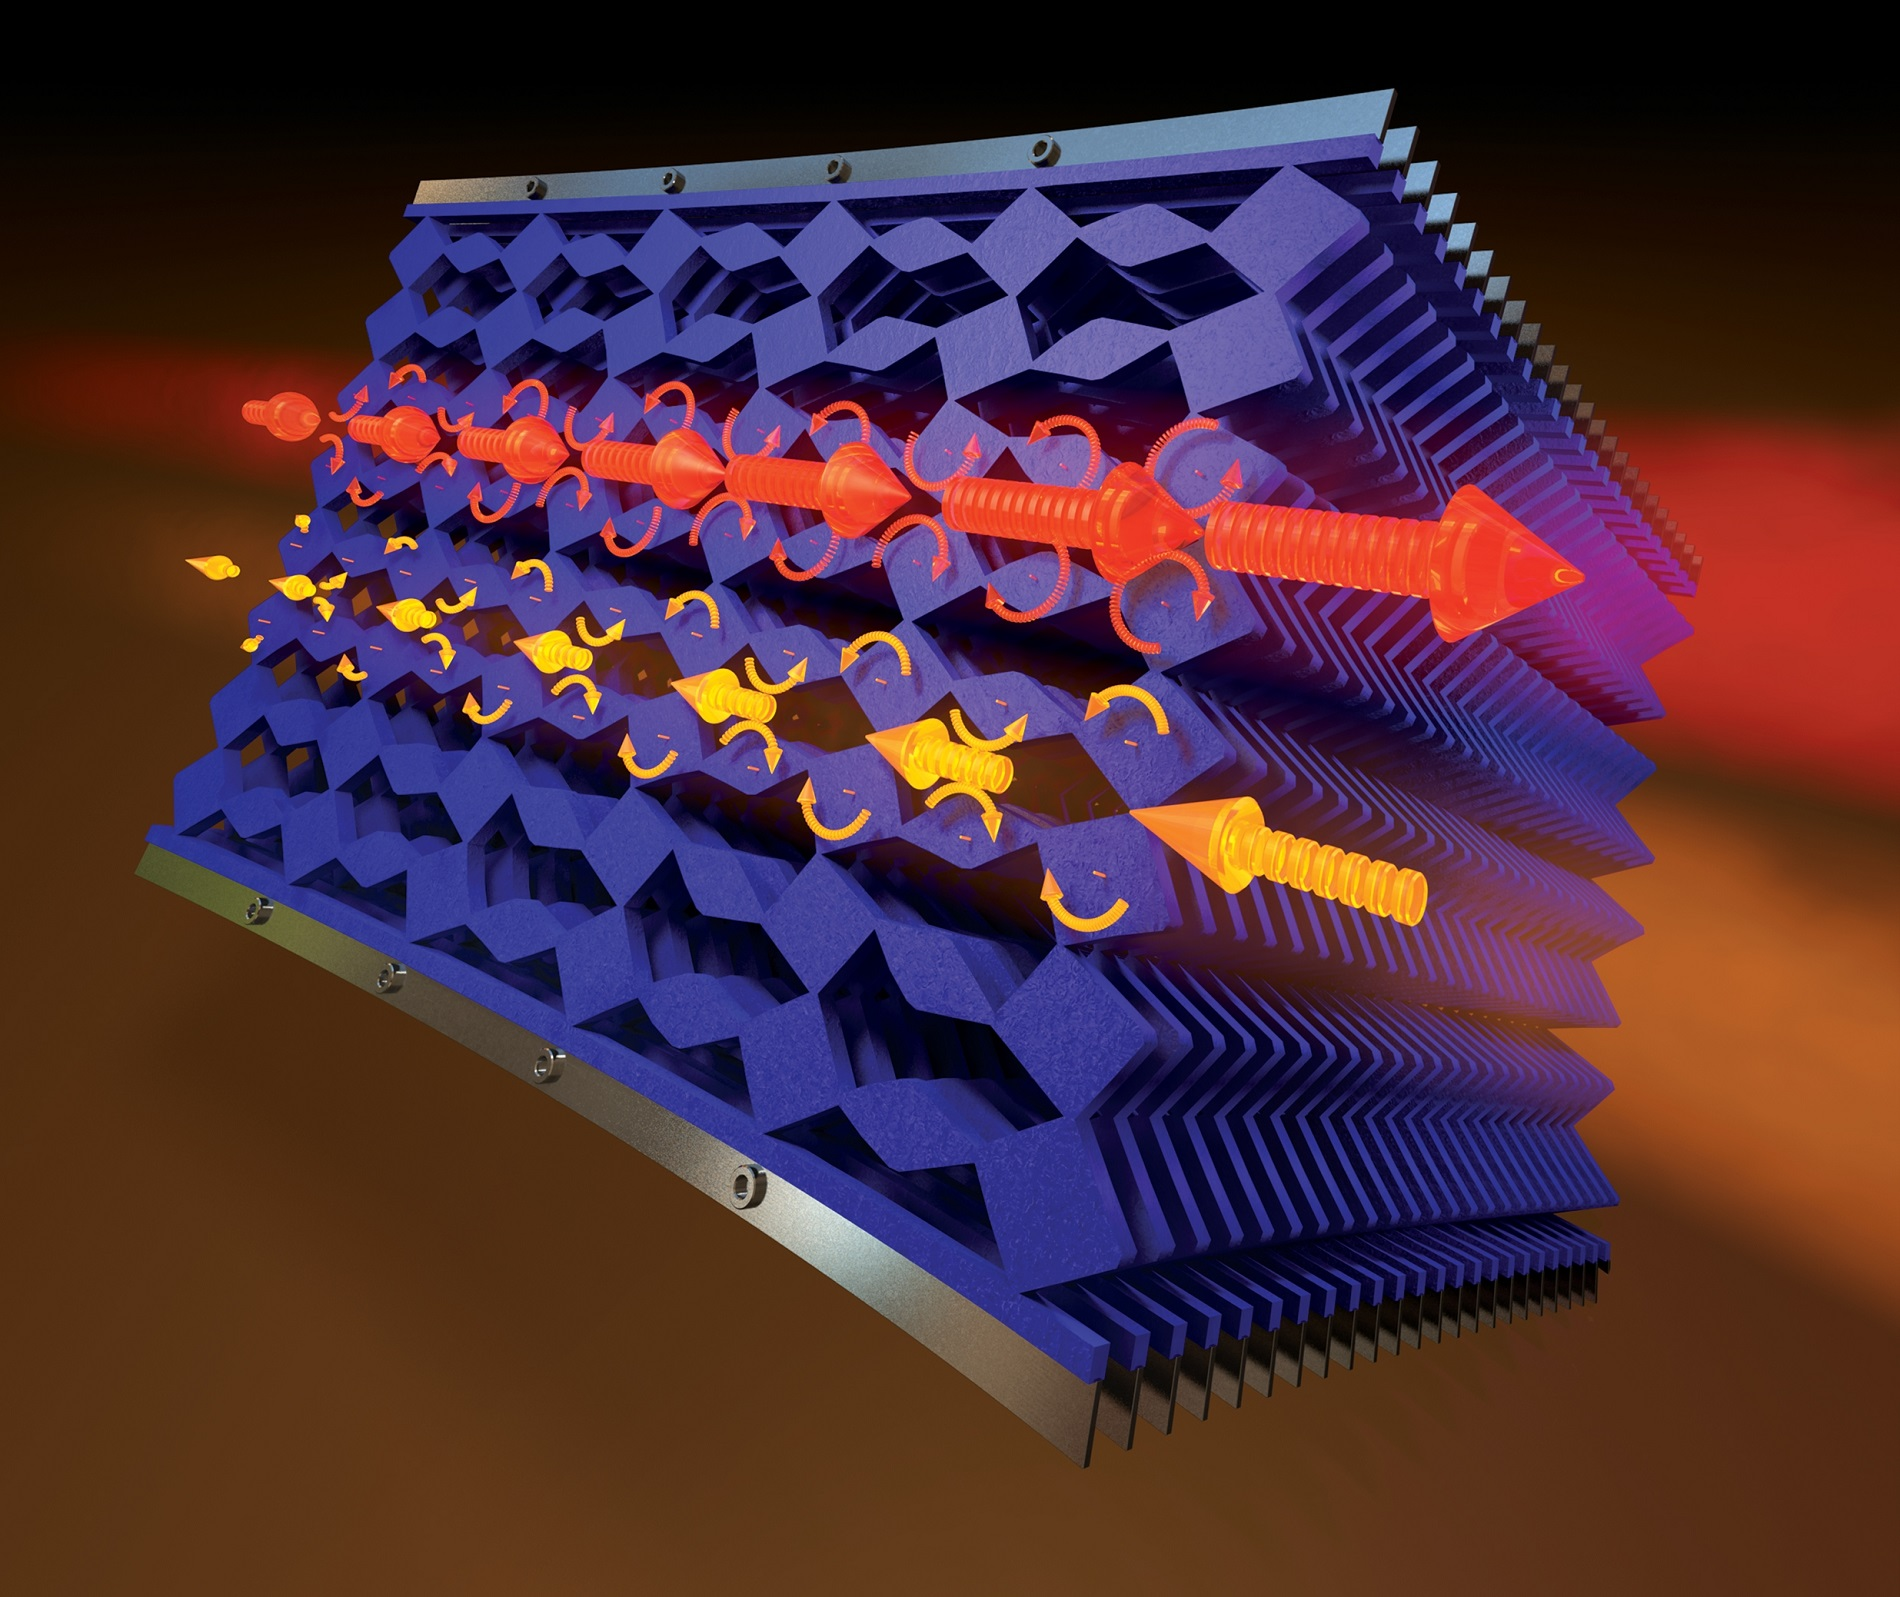 This is an artist's rendering of mechanical metamaterials